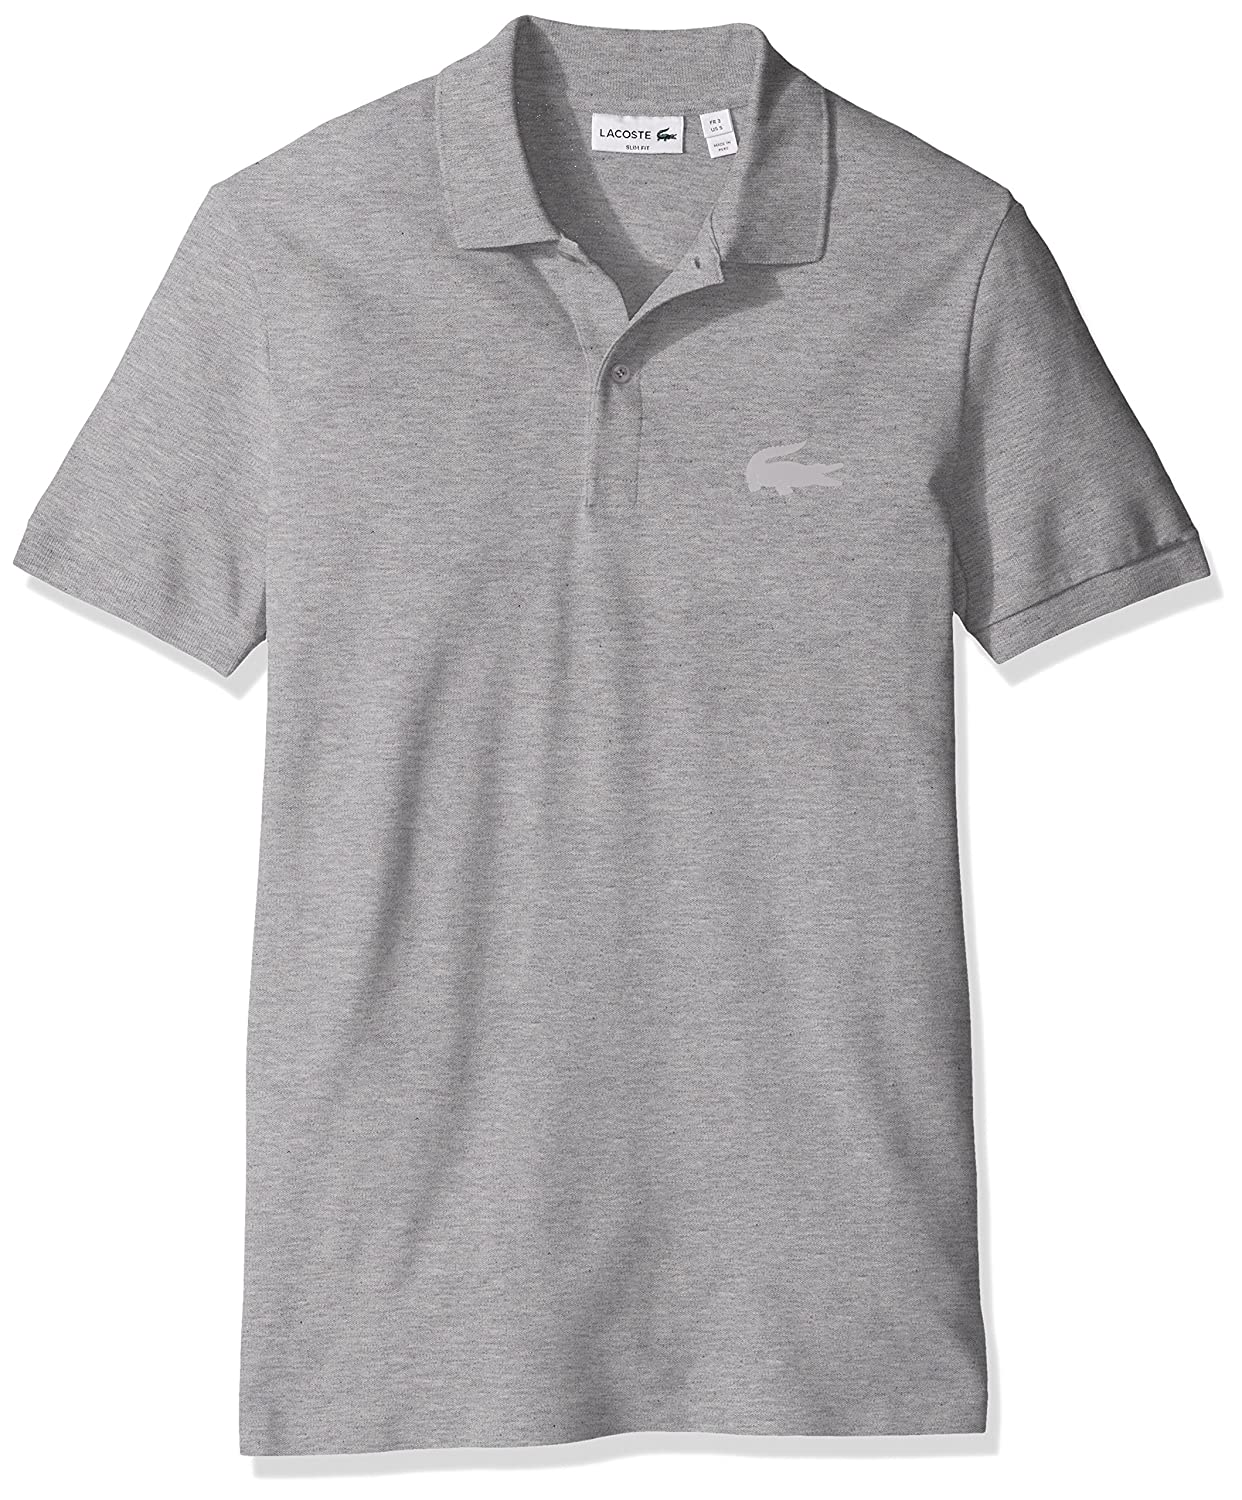 58075bd40 Lacoste Short Sleeve Dress Shirts for Men for sale